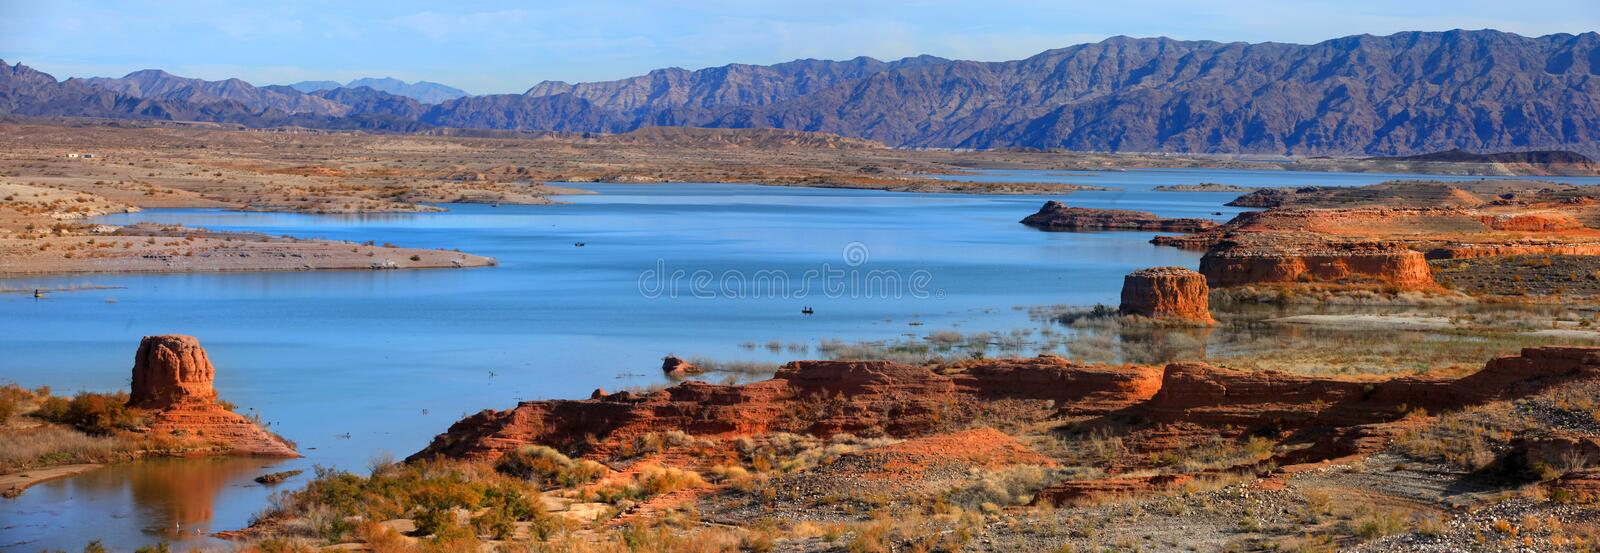 Download Lake Mead recreation area stock photo. Image of lake - 28541826